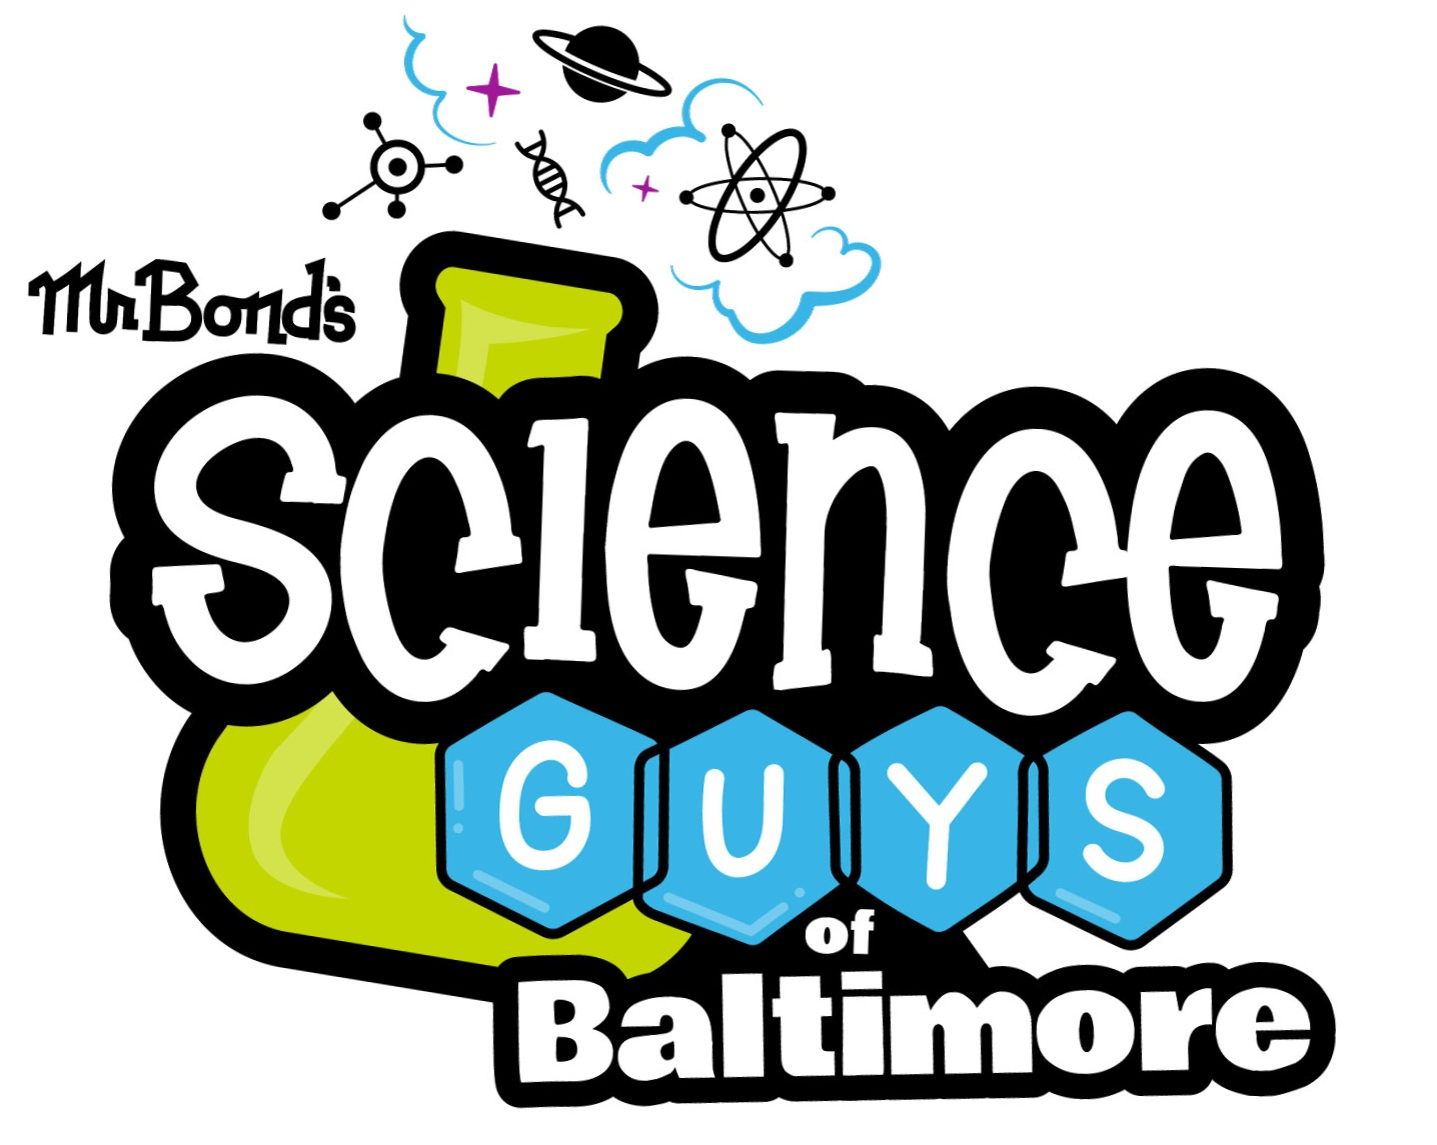 science-guys-baltimore-logo.jpg